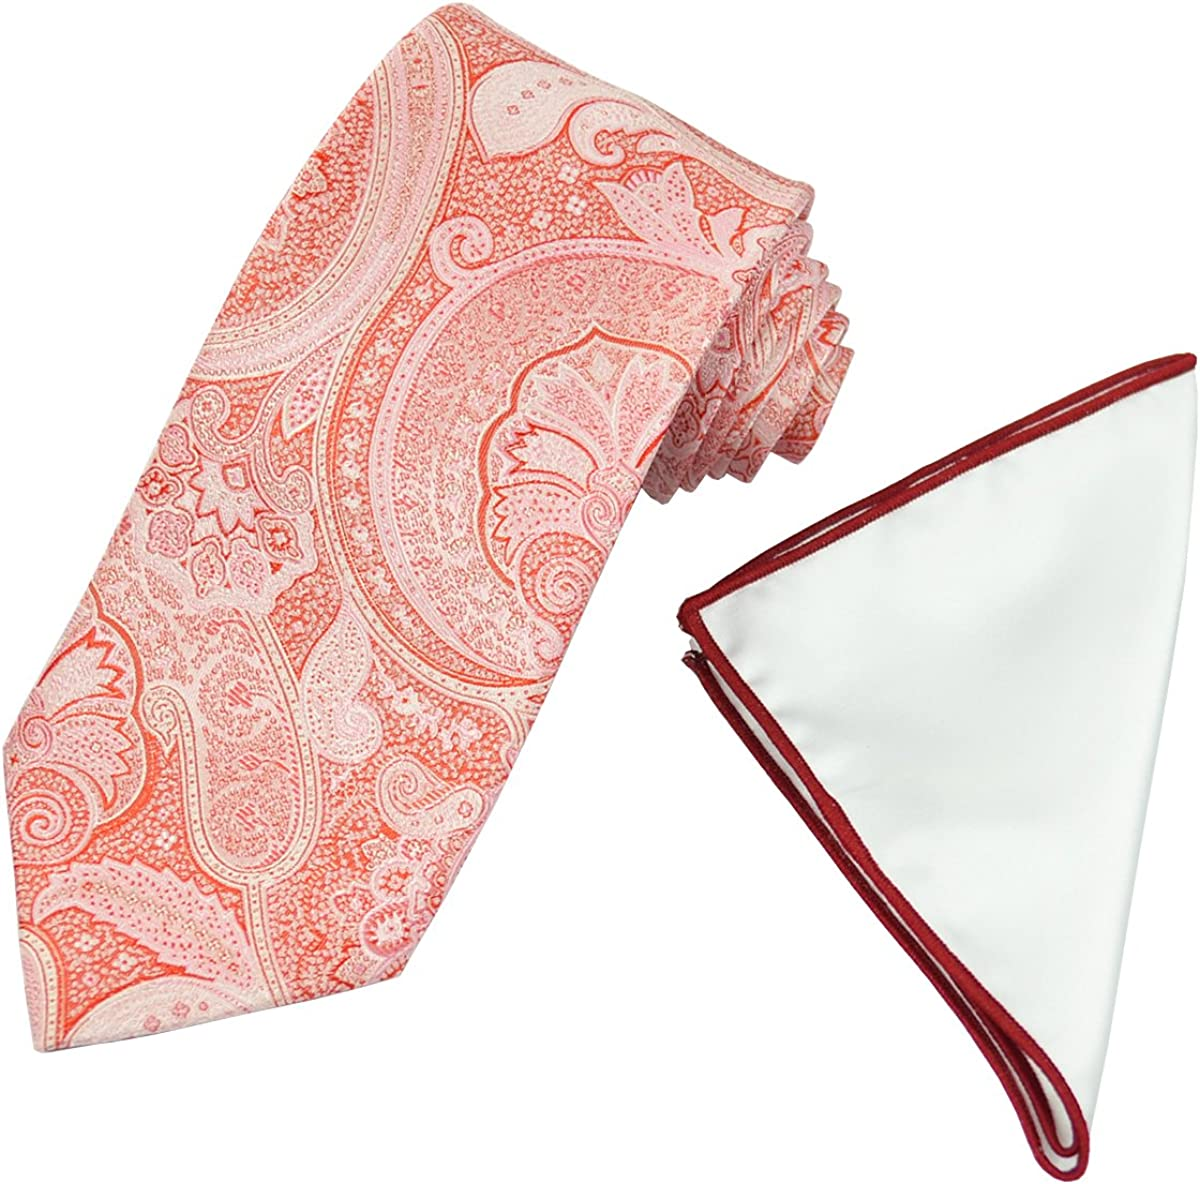 Lite Red Paisley Men's Tie with Contrast Pocket Square Set